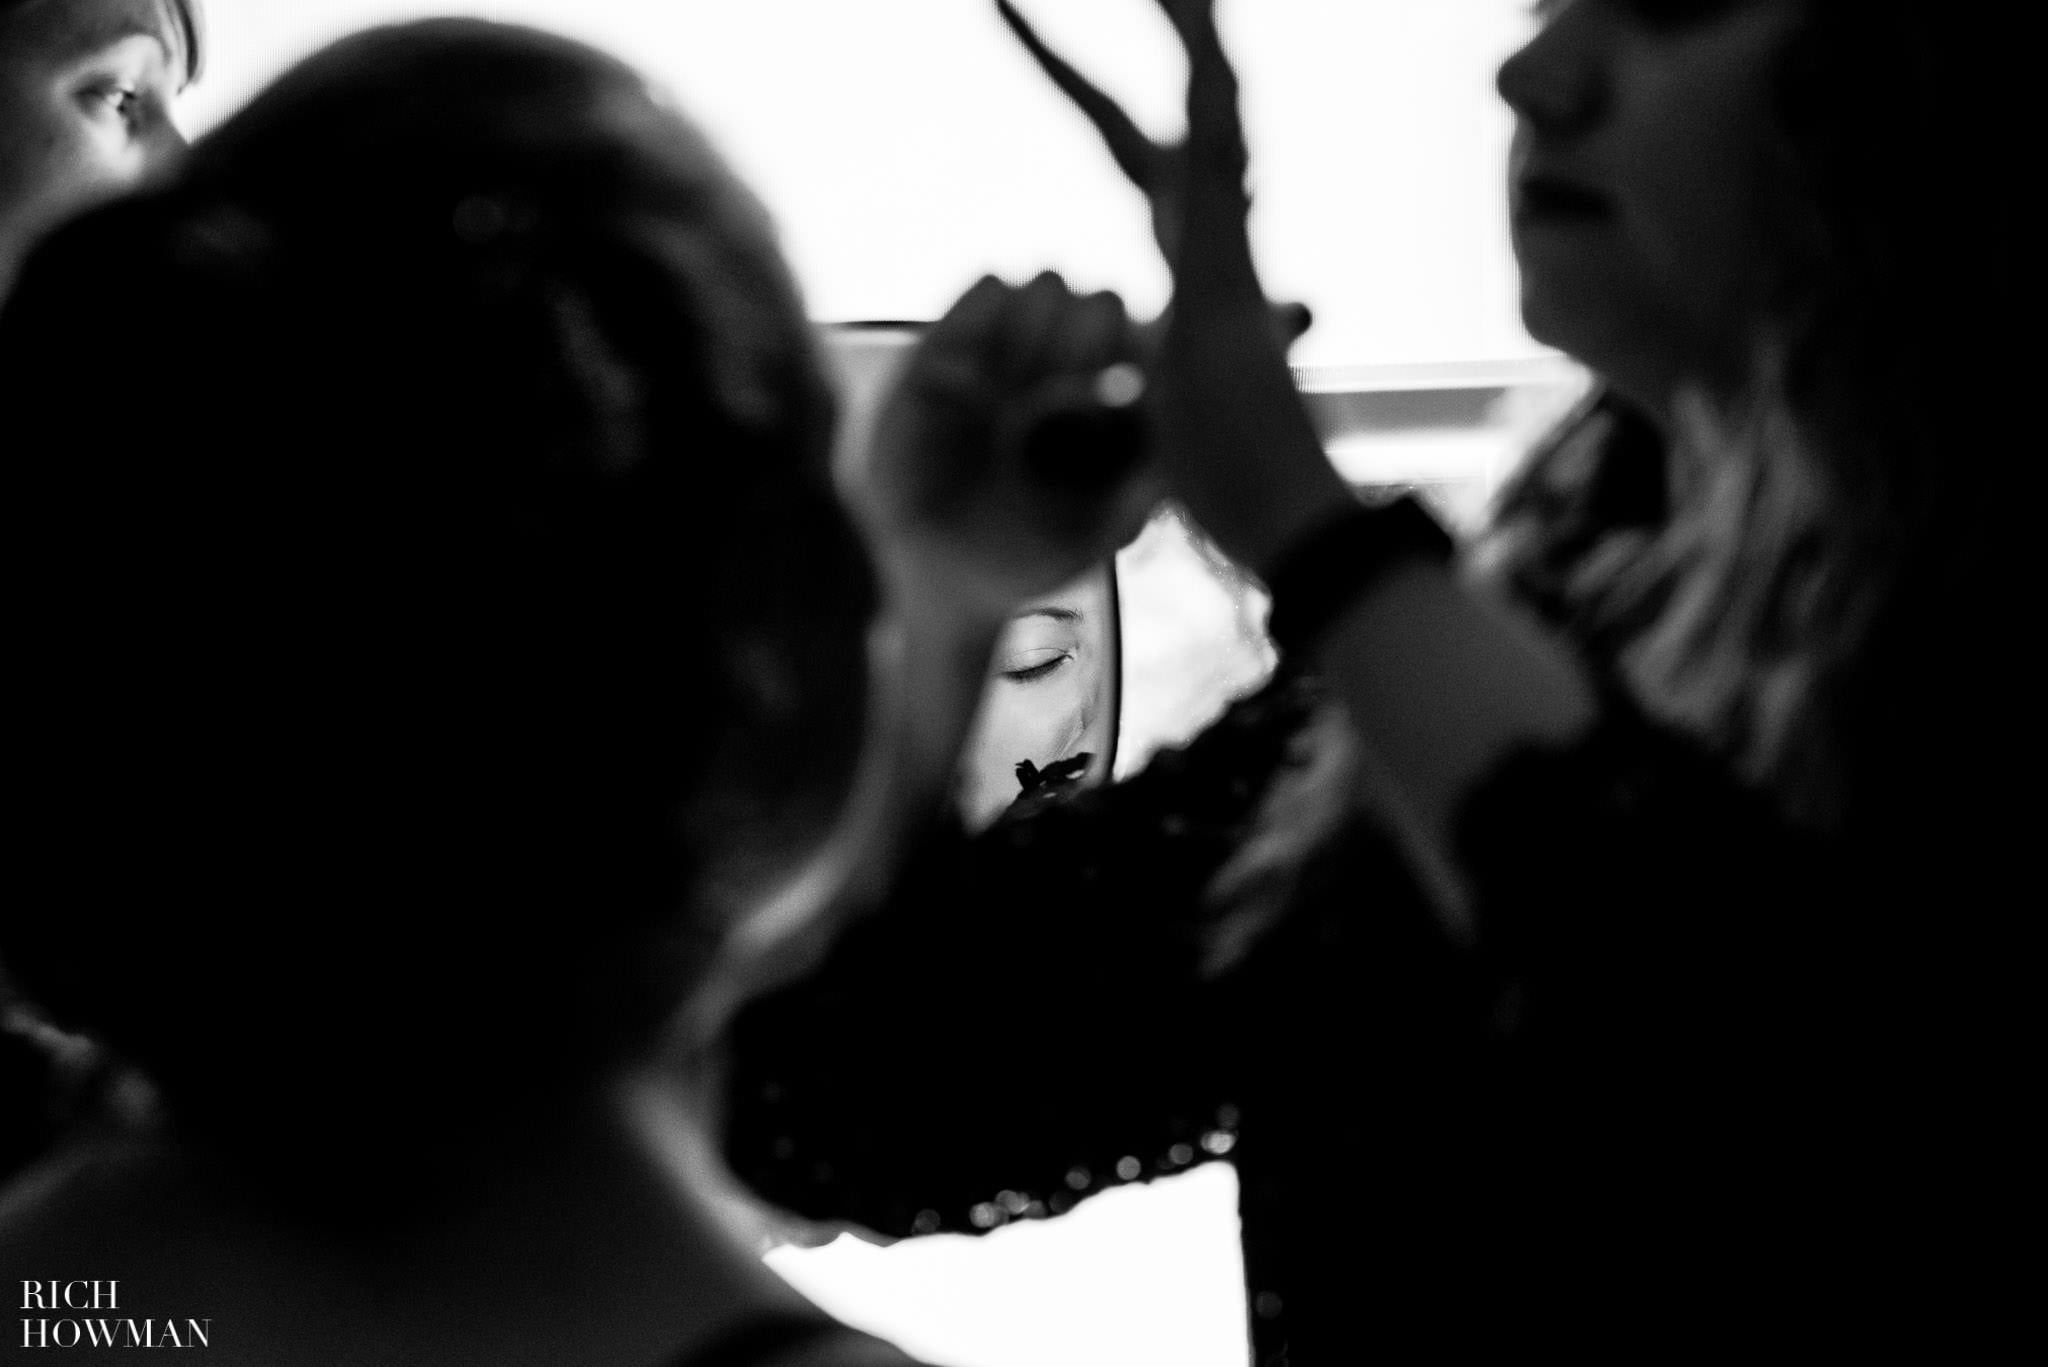 Reportage wedding photo. The brides eye isolated in a mirror.